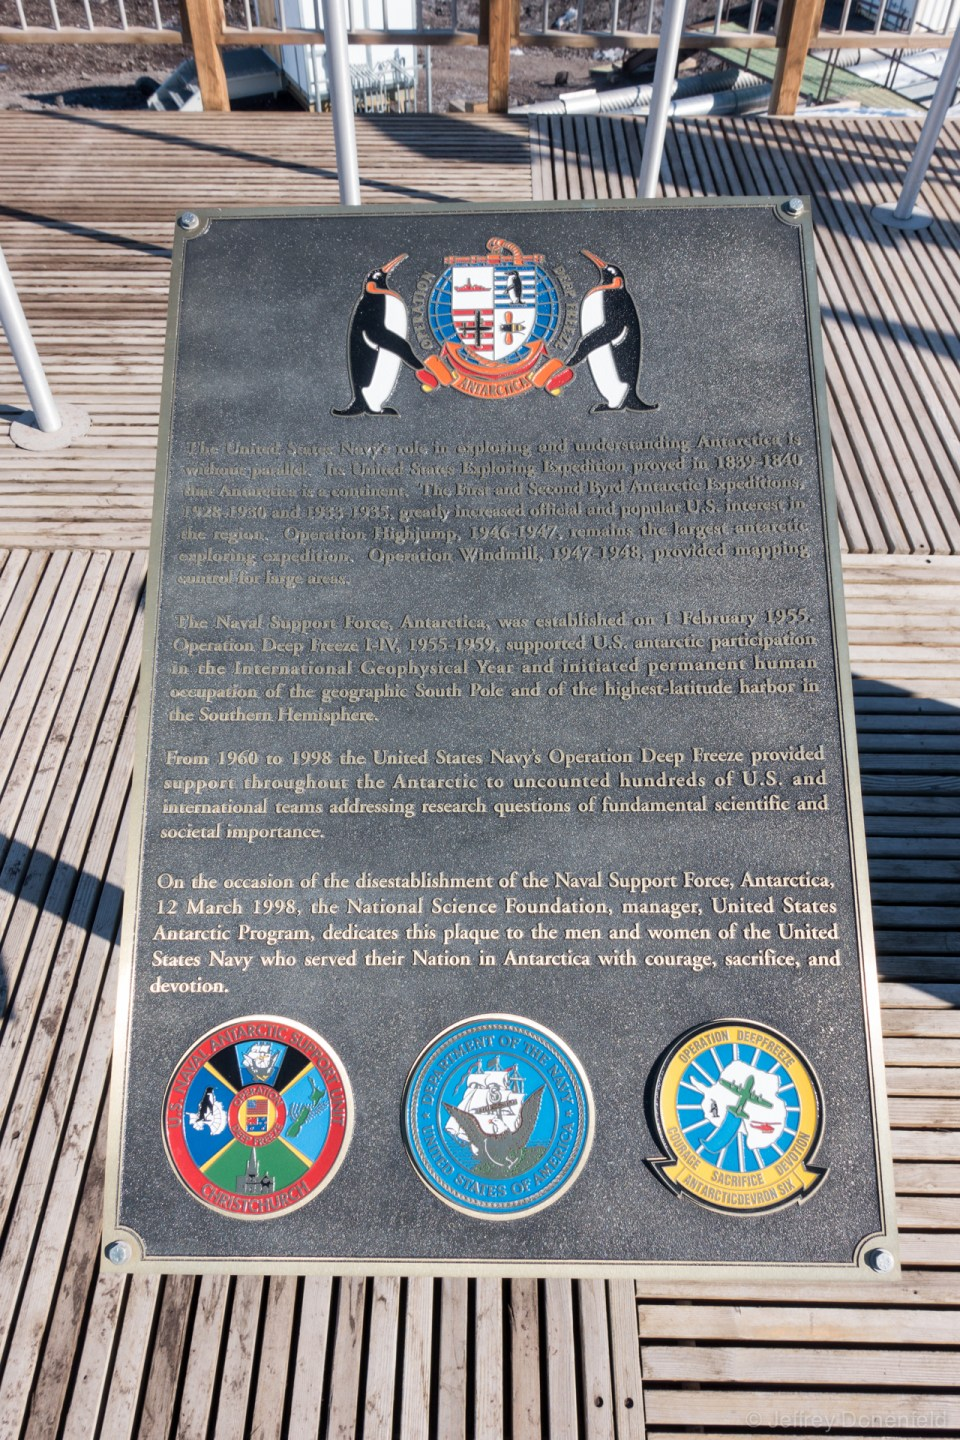 The plaque commemorating Operation Deep Freeze, on the back deck of the Chalet